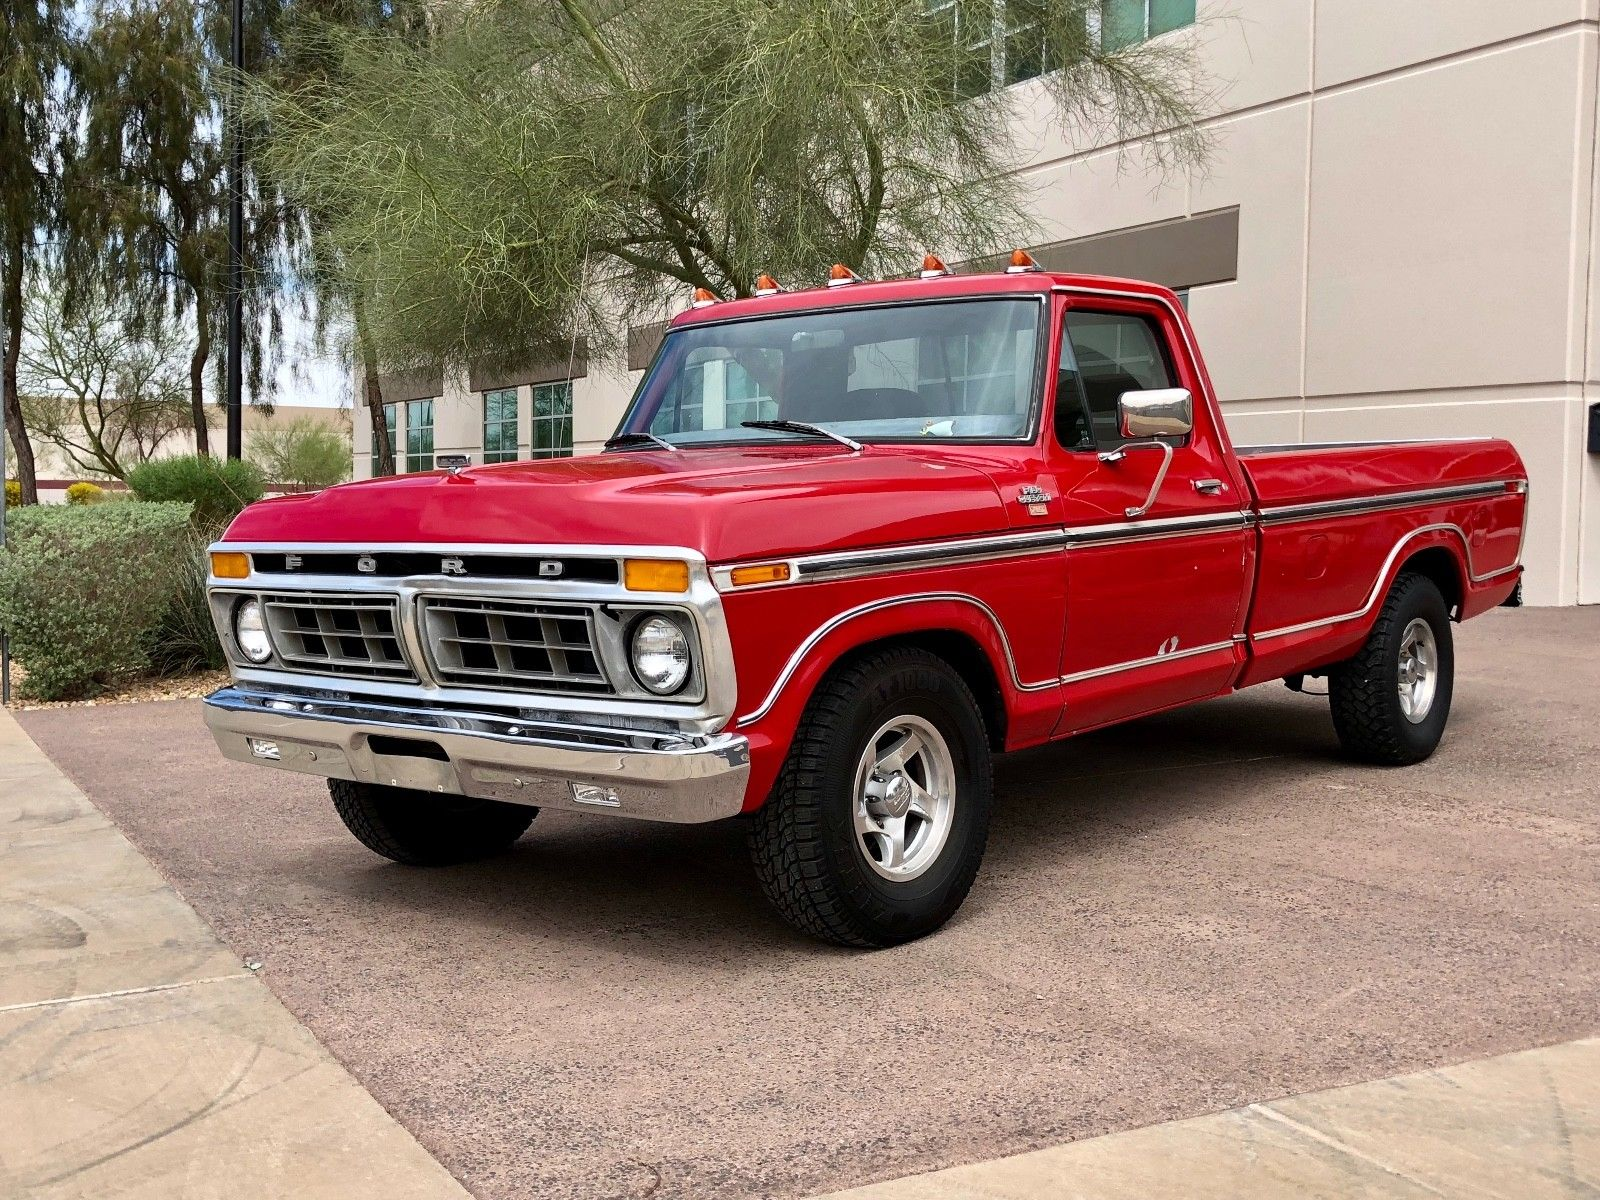 Classic 4X4 Trucks For Sale >> 1977 Ford F 150 XLT Ranger Classic Pickup Truck for sale